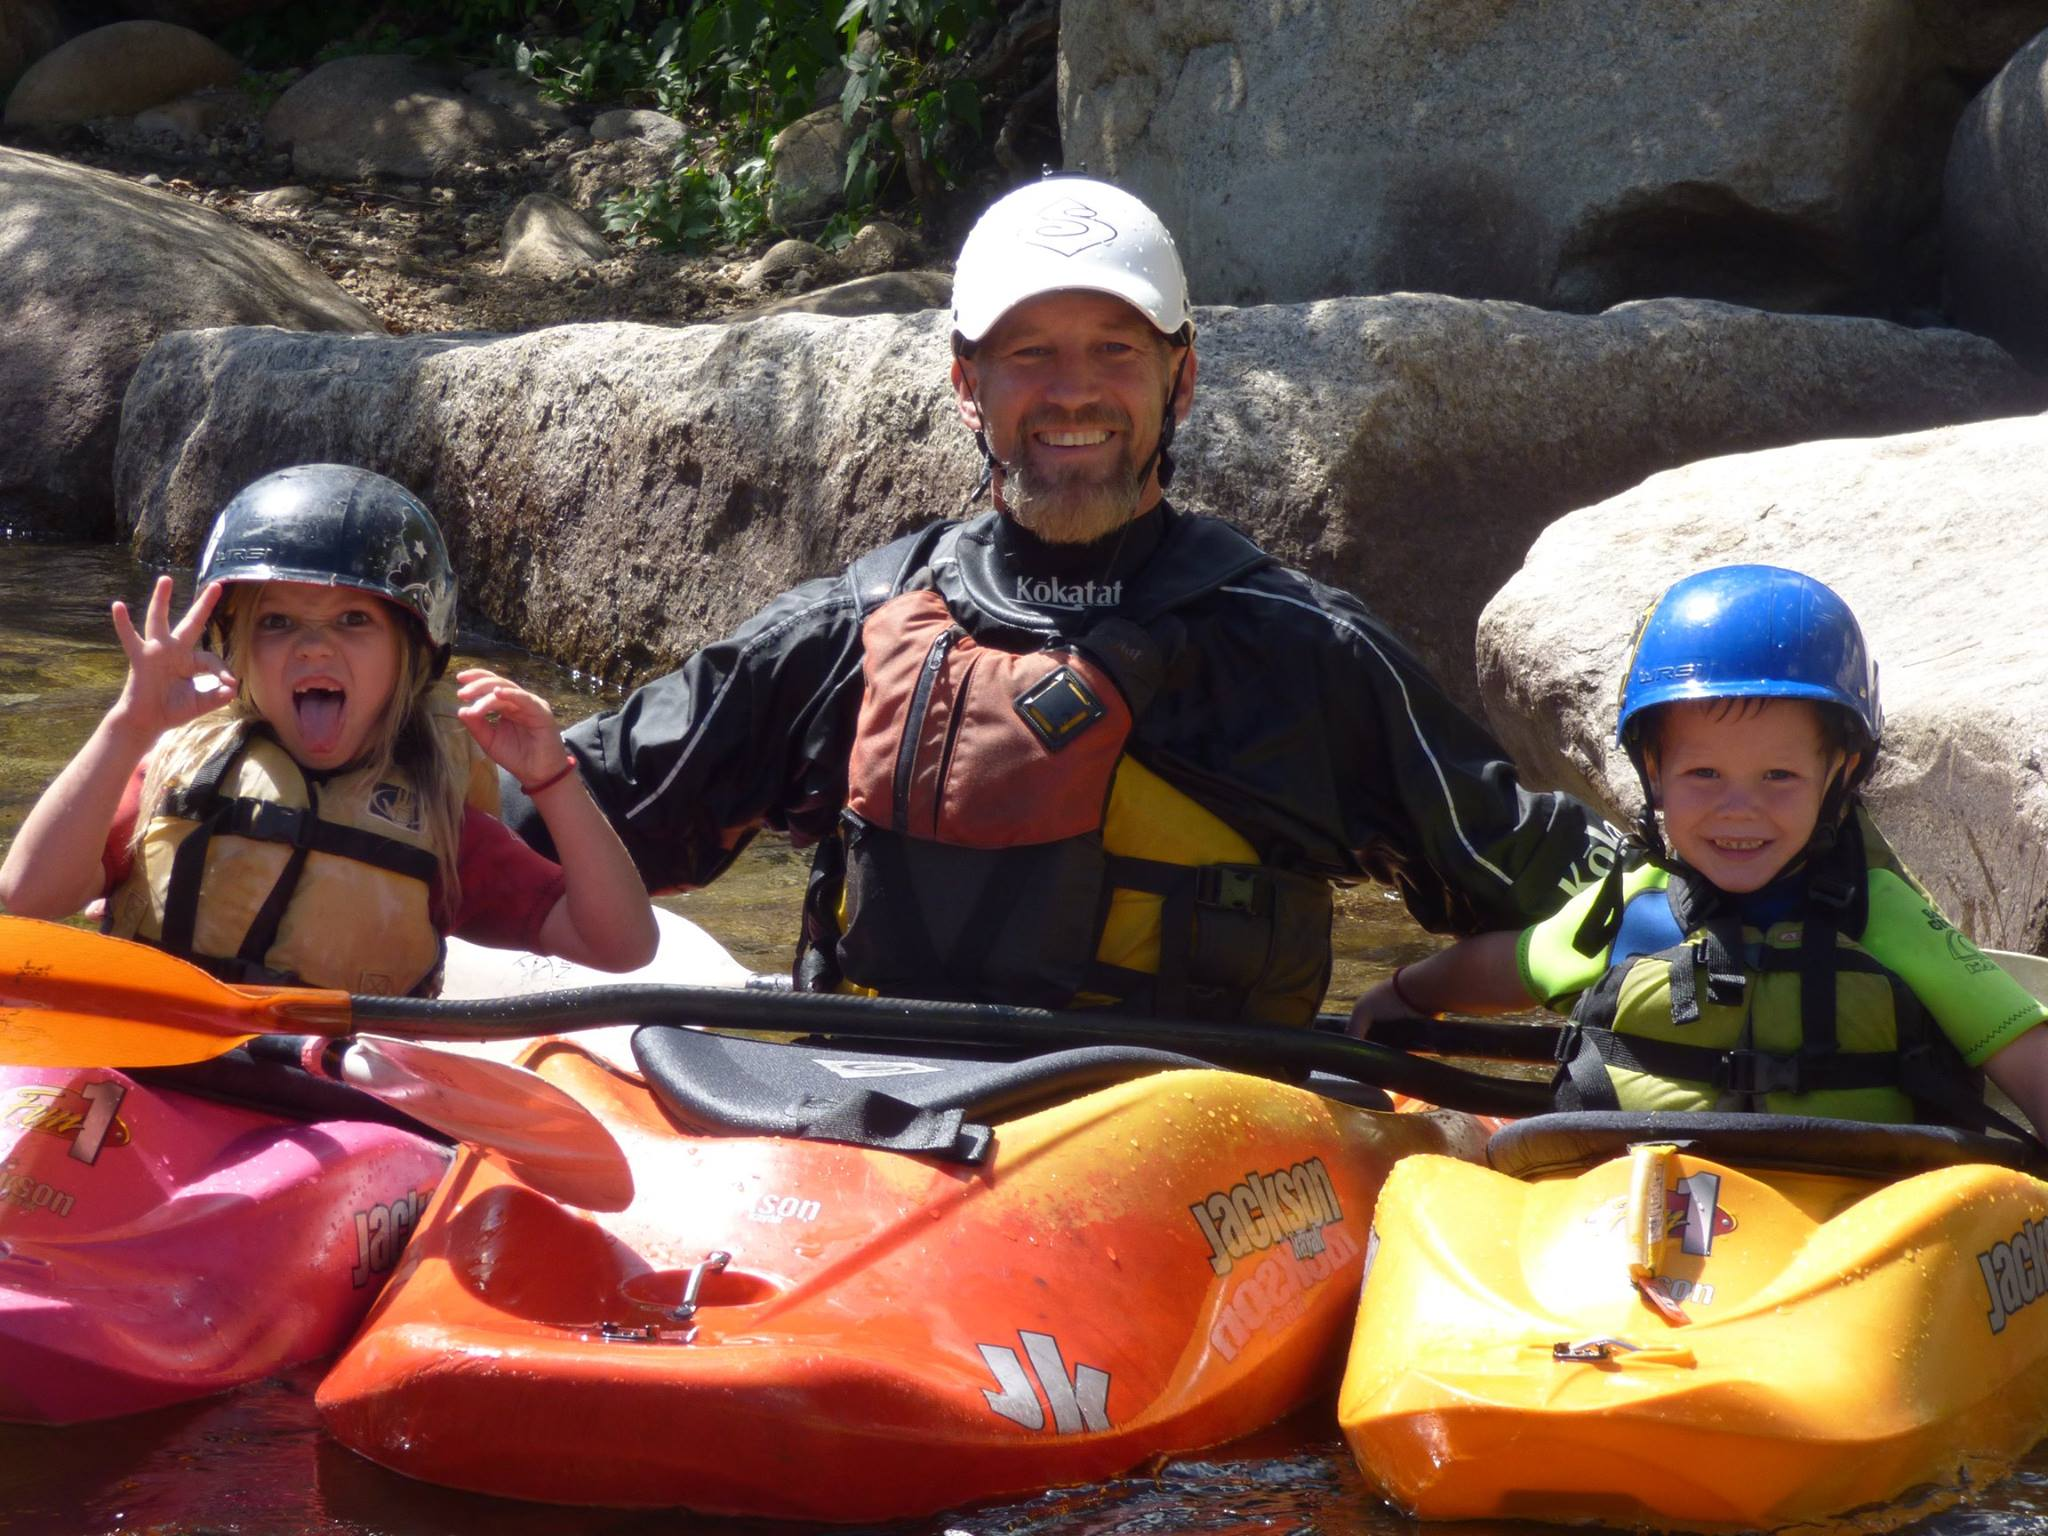 Dont forget river fun in the top 6 Fun Free Things To Do In Glenwood Springs, CO!